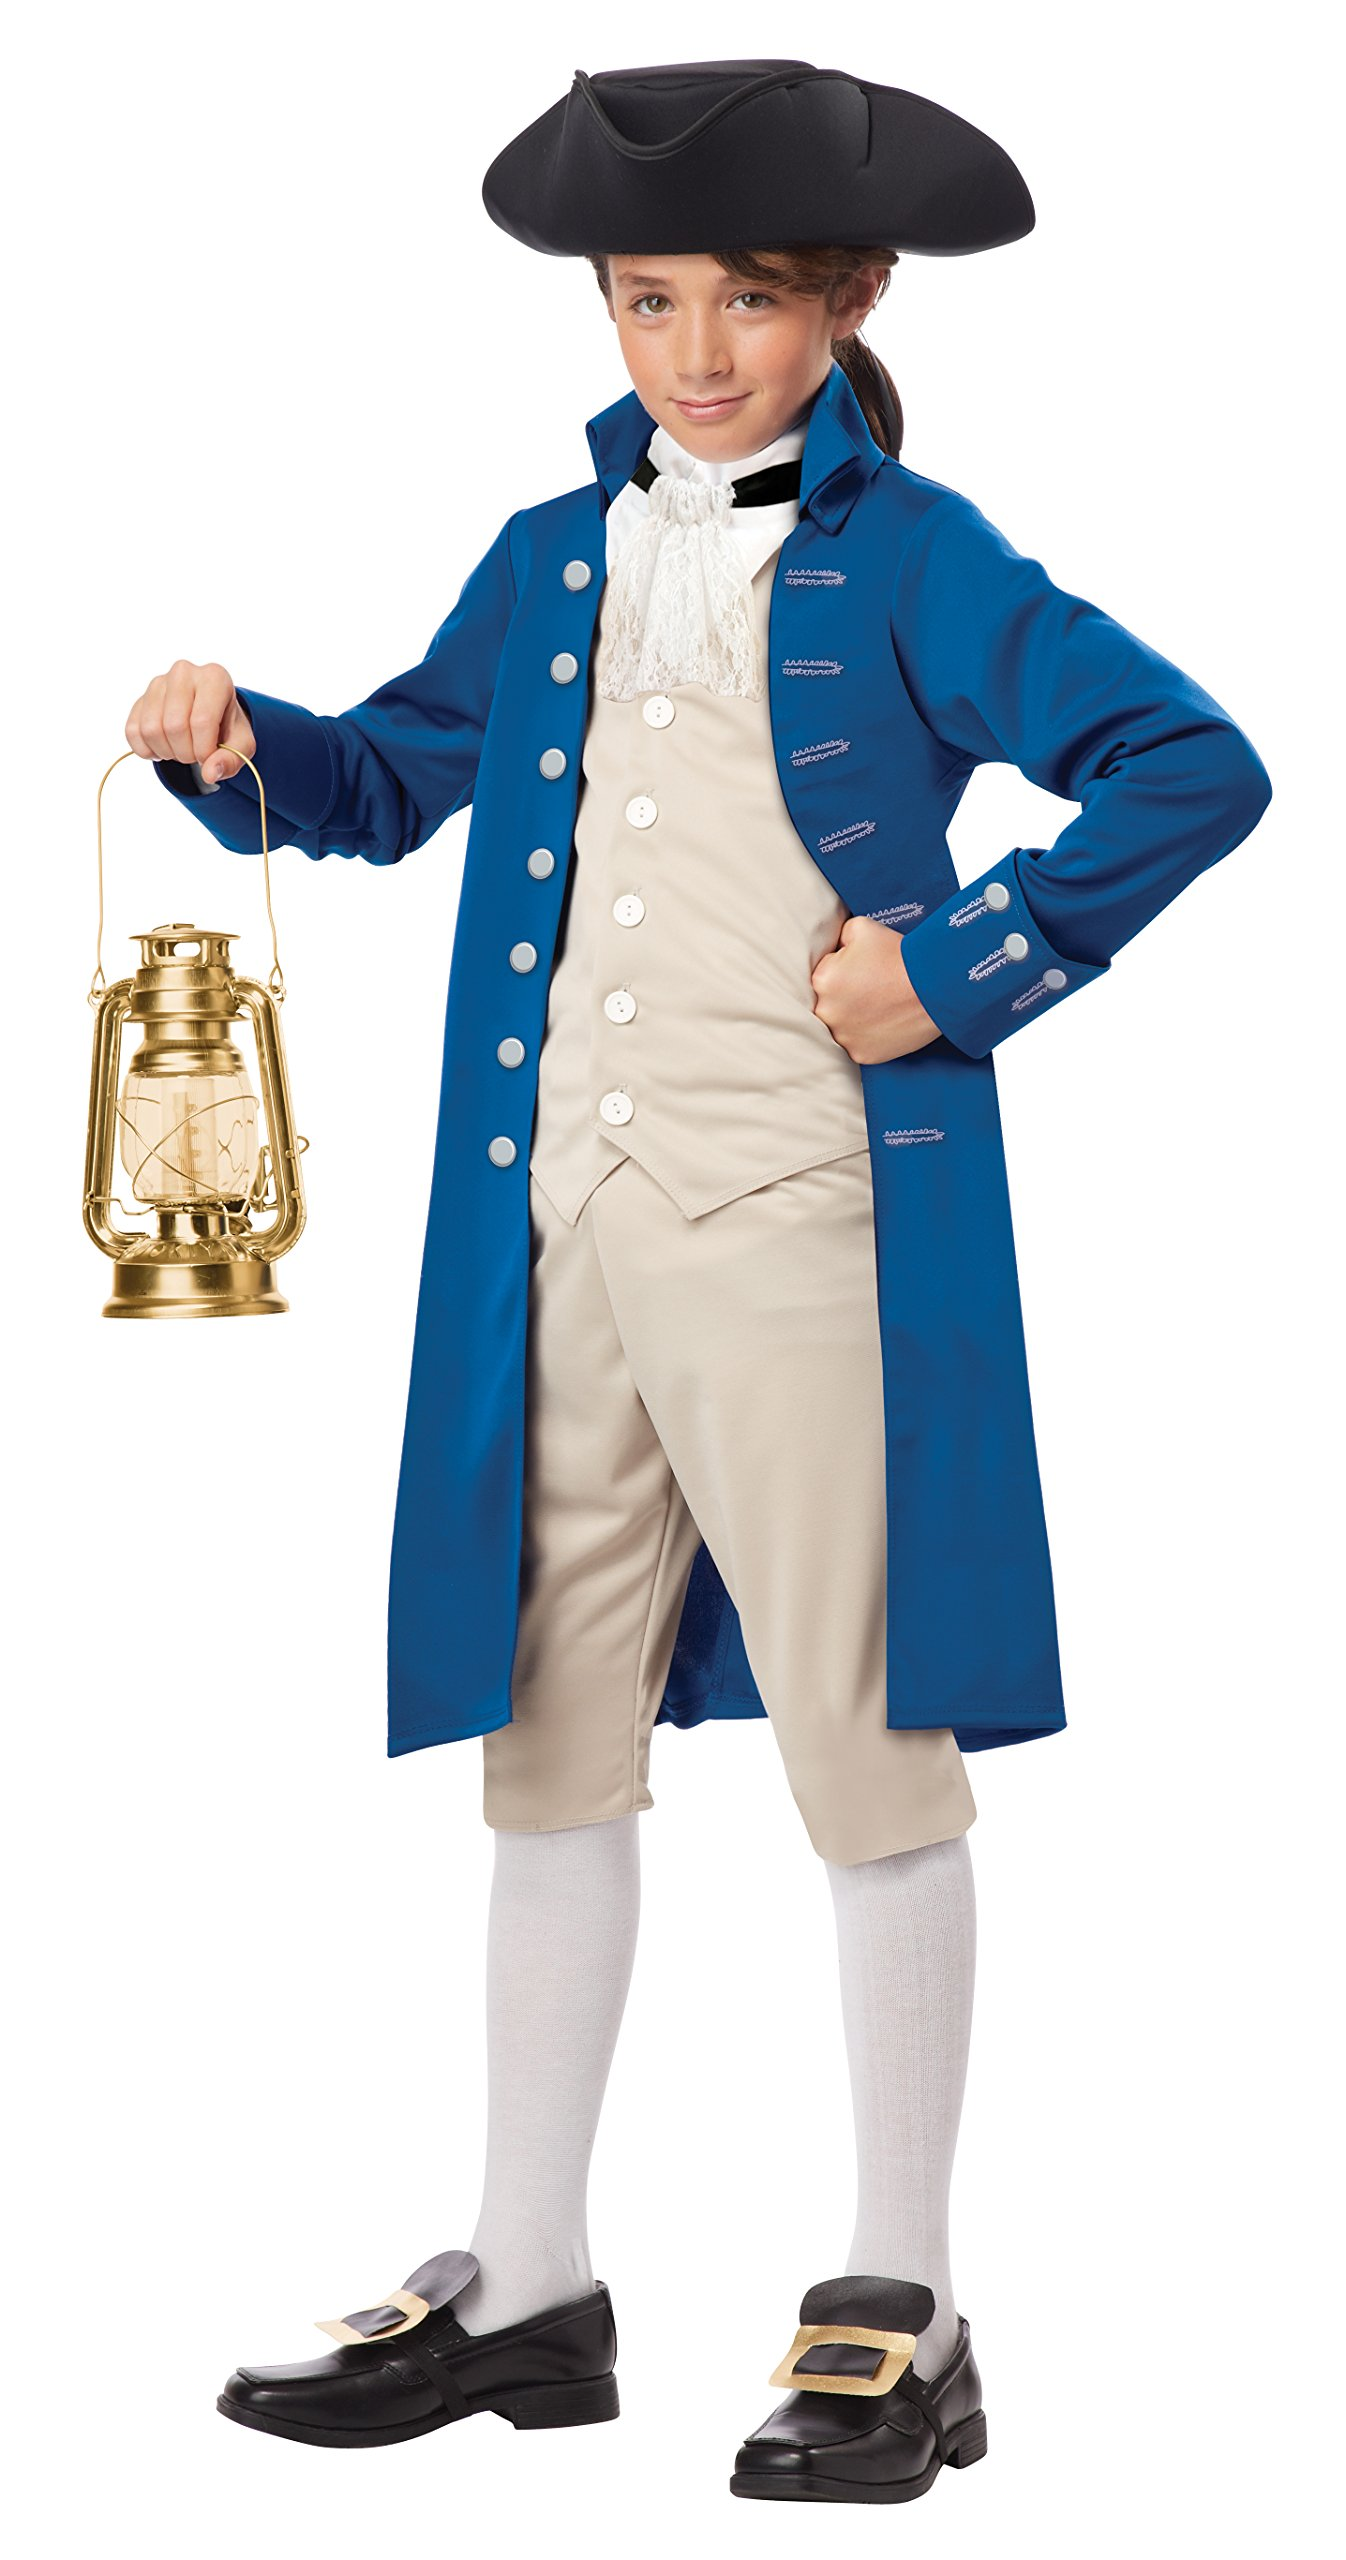 California Costumes Paul Revere Boy Costume, One Color, Large by California Costumes